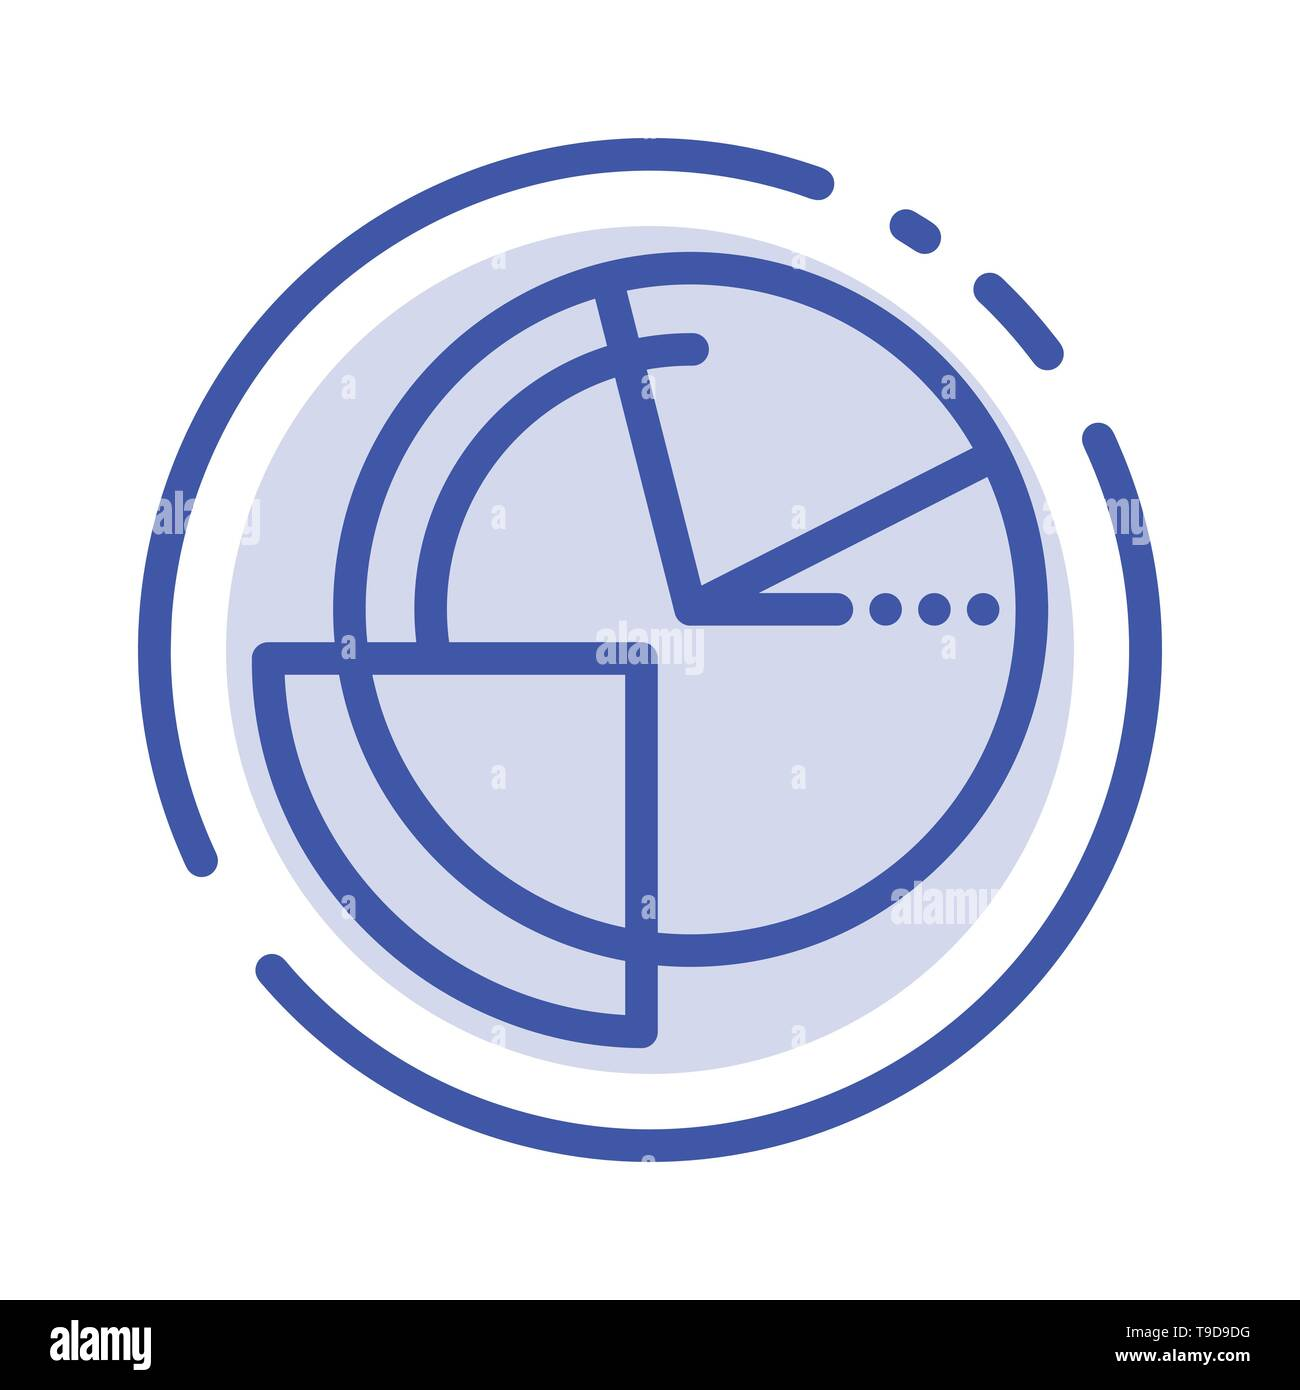 analysis, chart, data, diagram, monitoring blue dotted line line icon